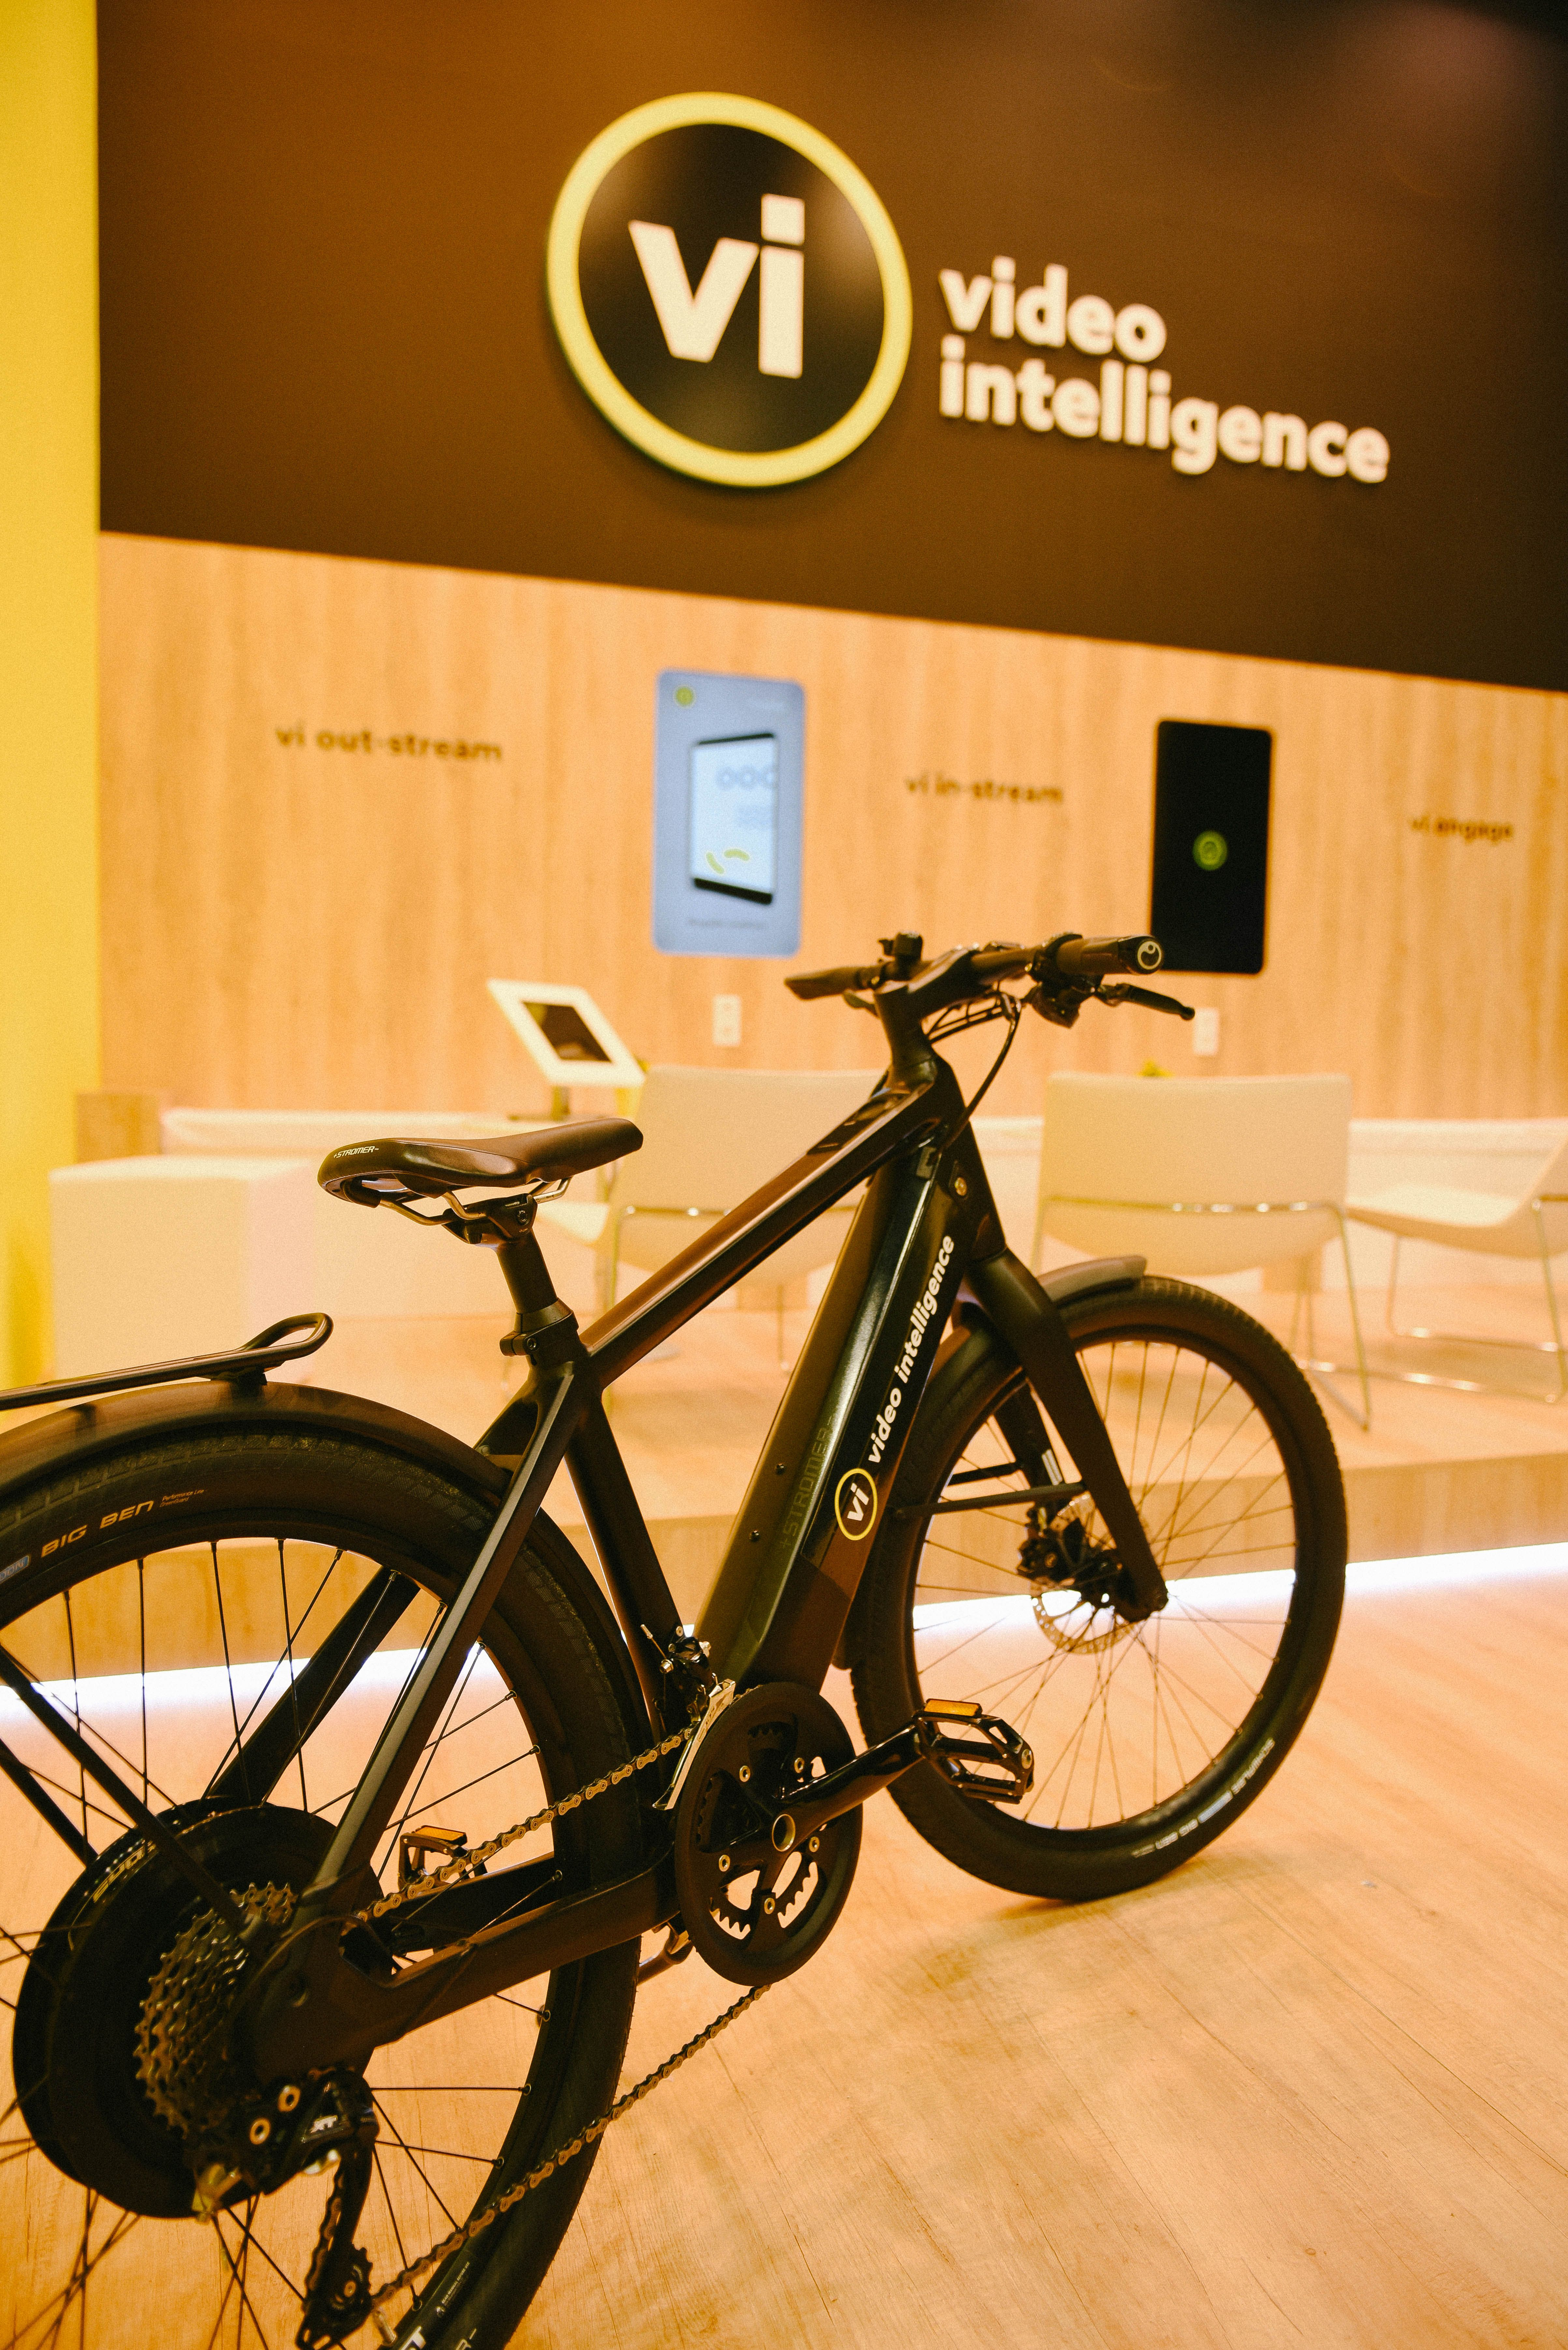 This Stromer ST2 e-bike was up for grabs for one lucky winner.